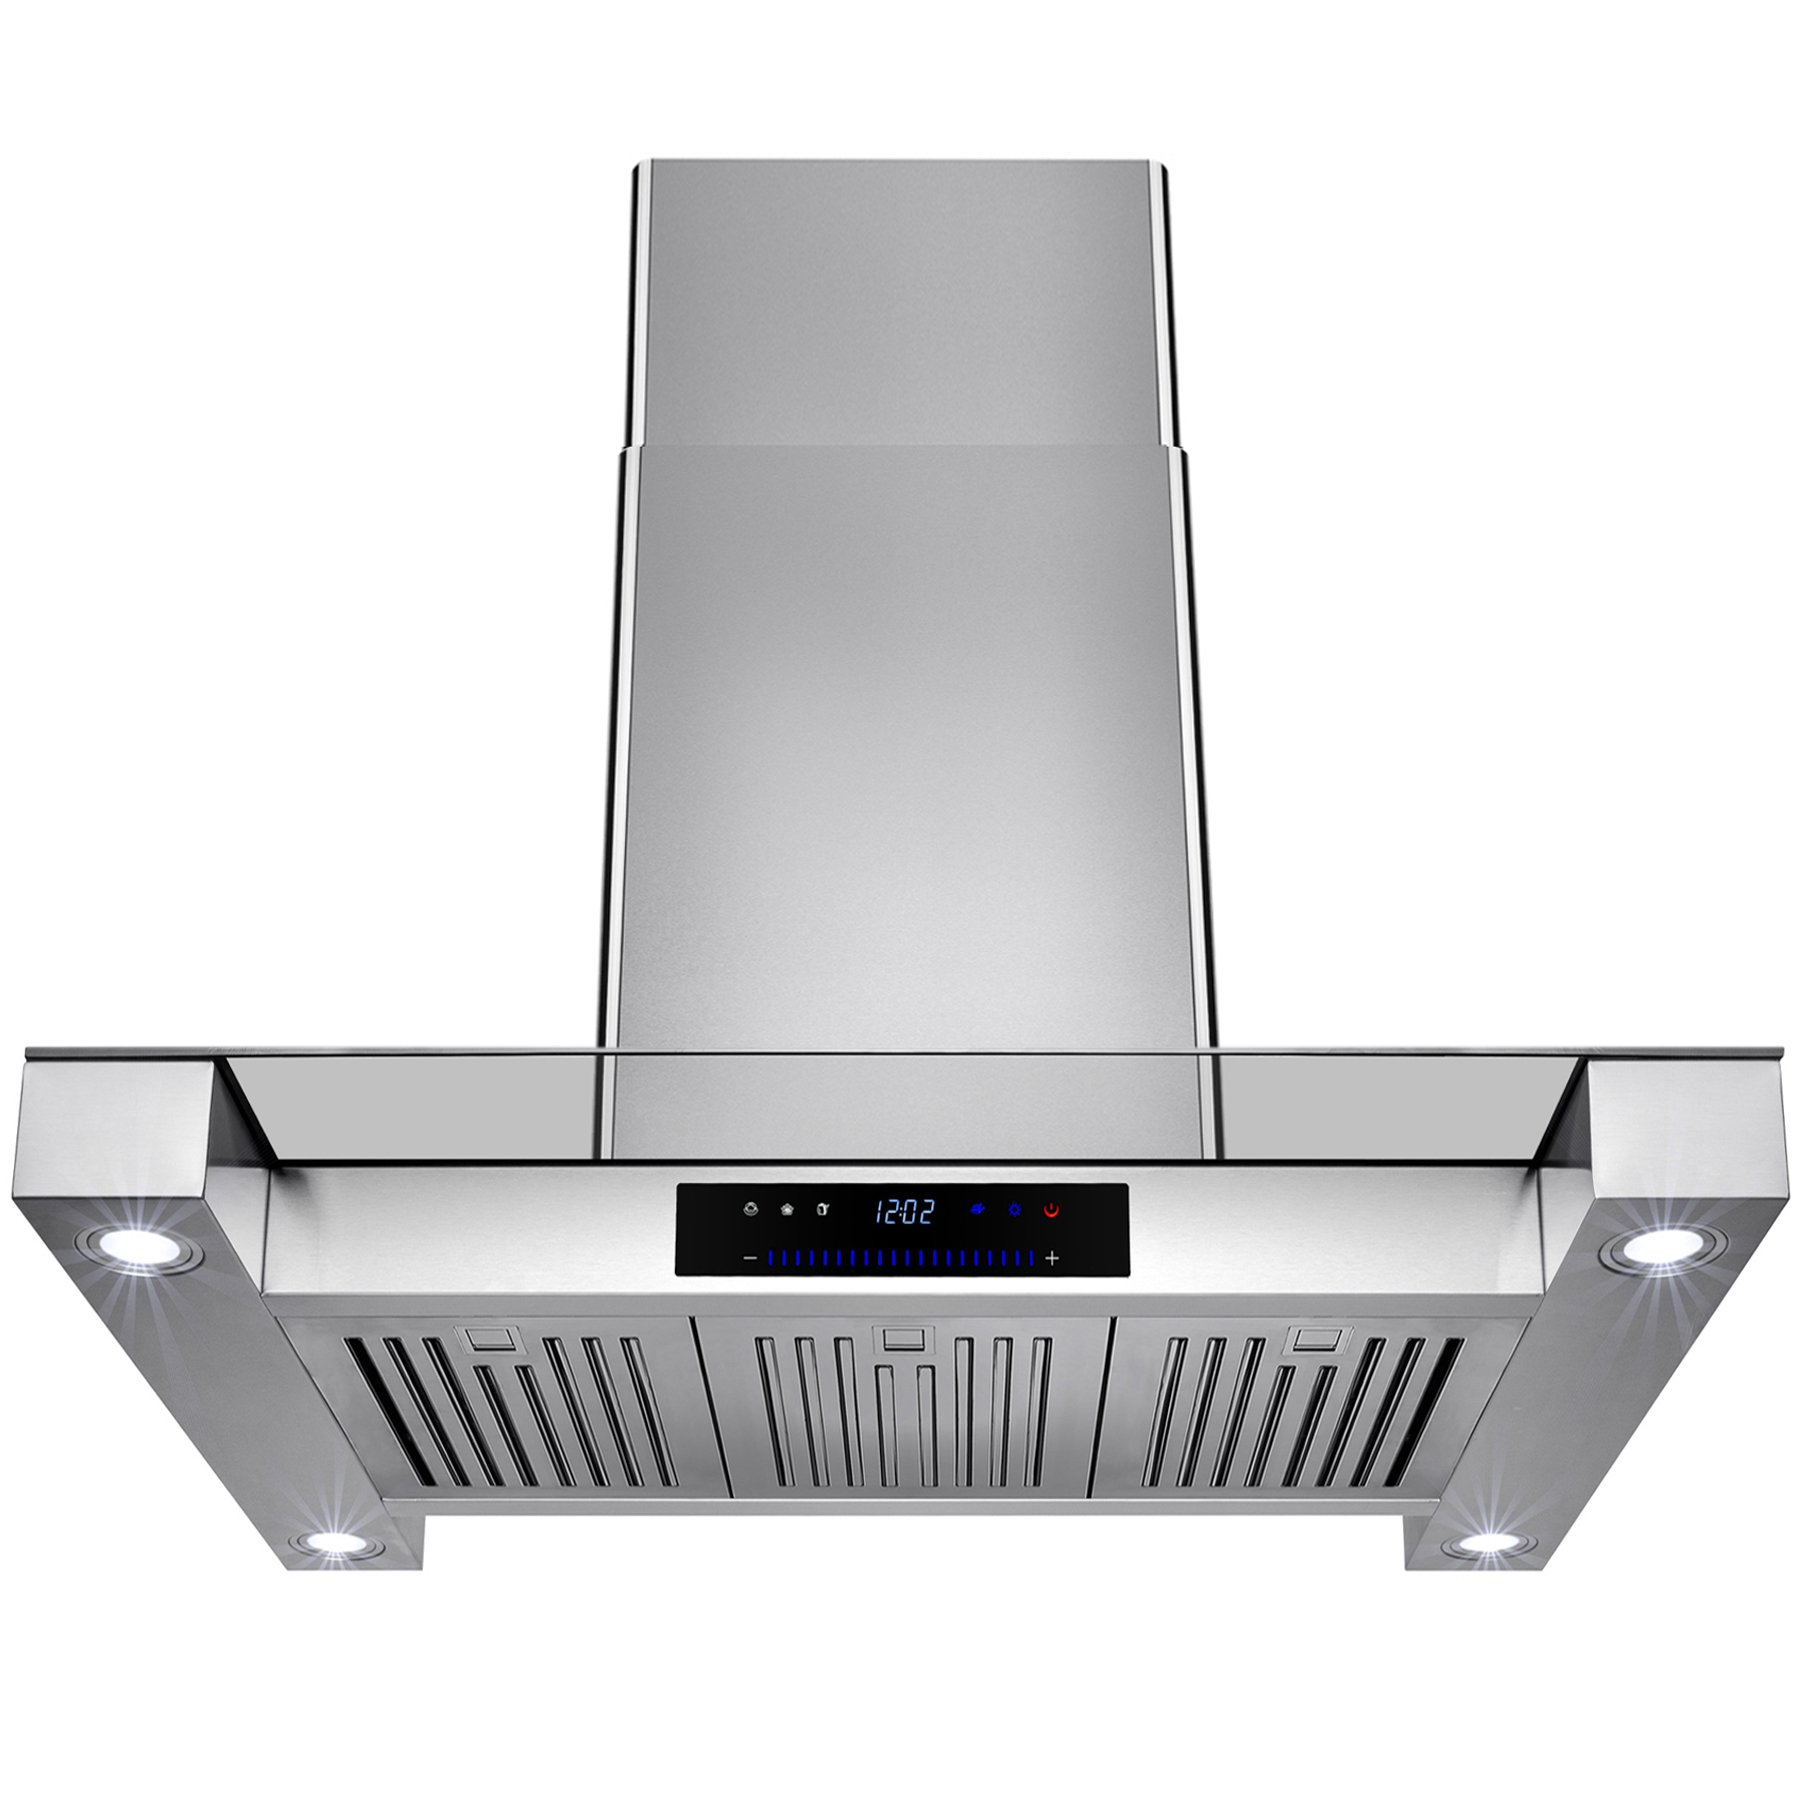 Golden Vantage 36'' Inch Convertible Stainless Steel Island Mount Range Hood Cooker Fan Oven Vent Exhaust With Touch Screen Panel Display LED Controls Light Lamp Baffle Filters